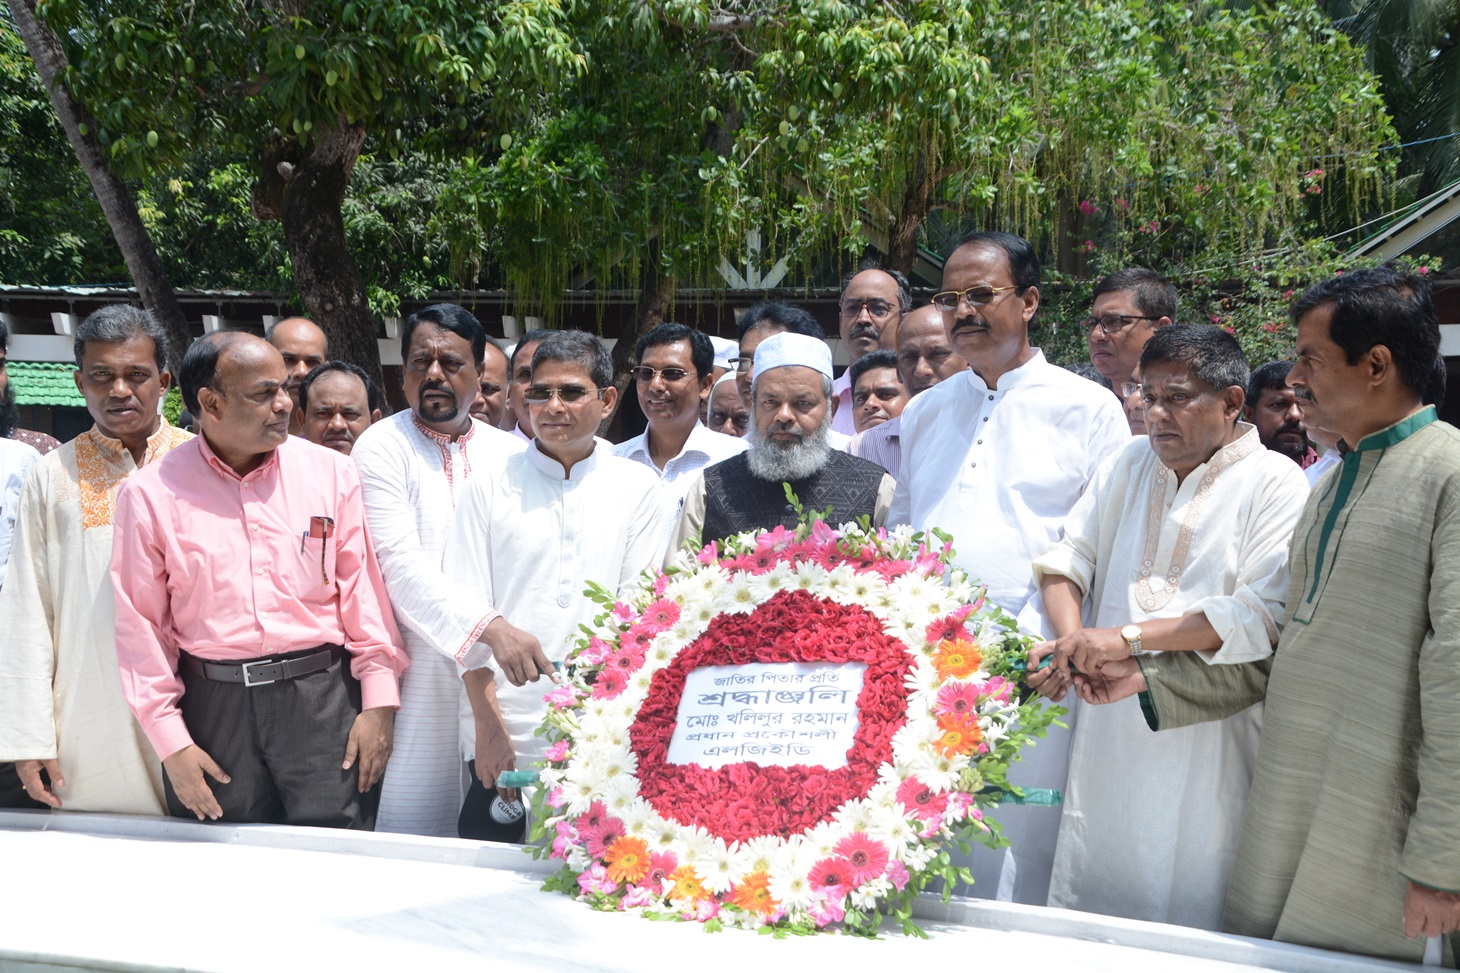 Newly appointed Chief Engineer of LGED Mr. Md. Khalilur Rahman placing floral wreaths at the grave of Father of the Nation Bangabandhu Sheikh Mujibur Rahman at Tungipara of Gopalganj on 10/05/2019.